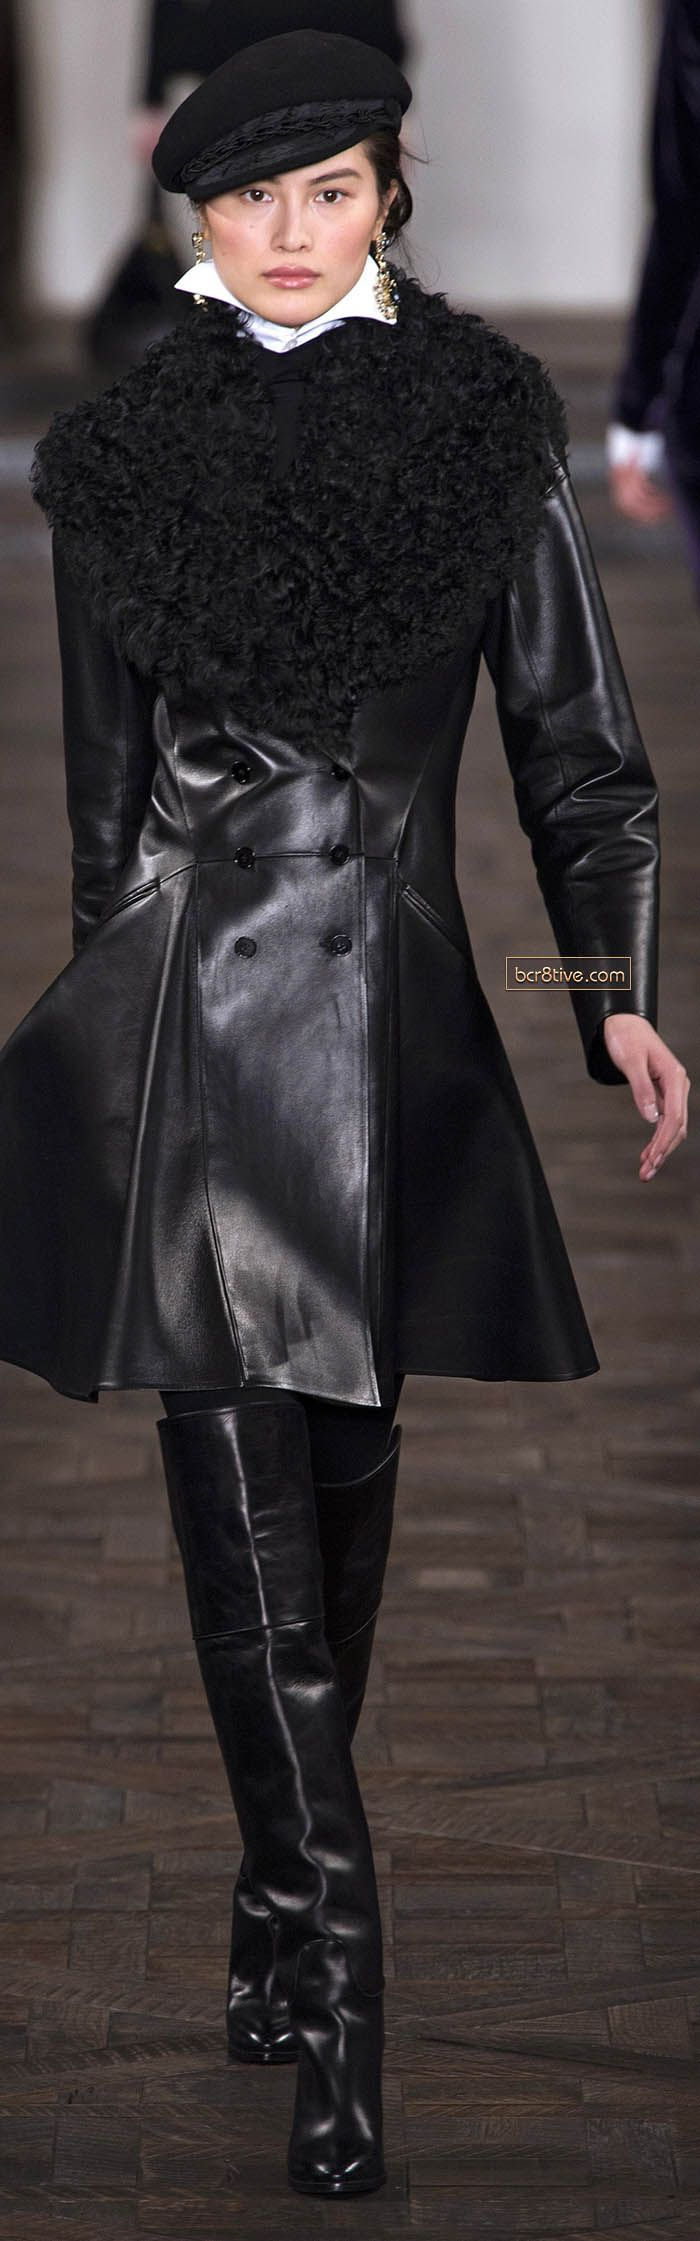 Fall winter 2013 fashion trends for women - Ralph Lauren Fall Winter 2013 New York Fashion Week